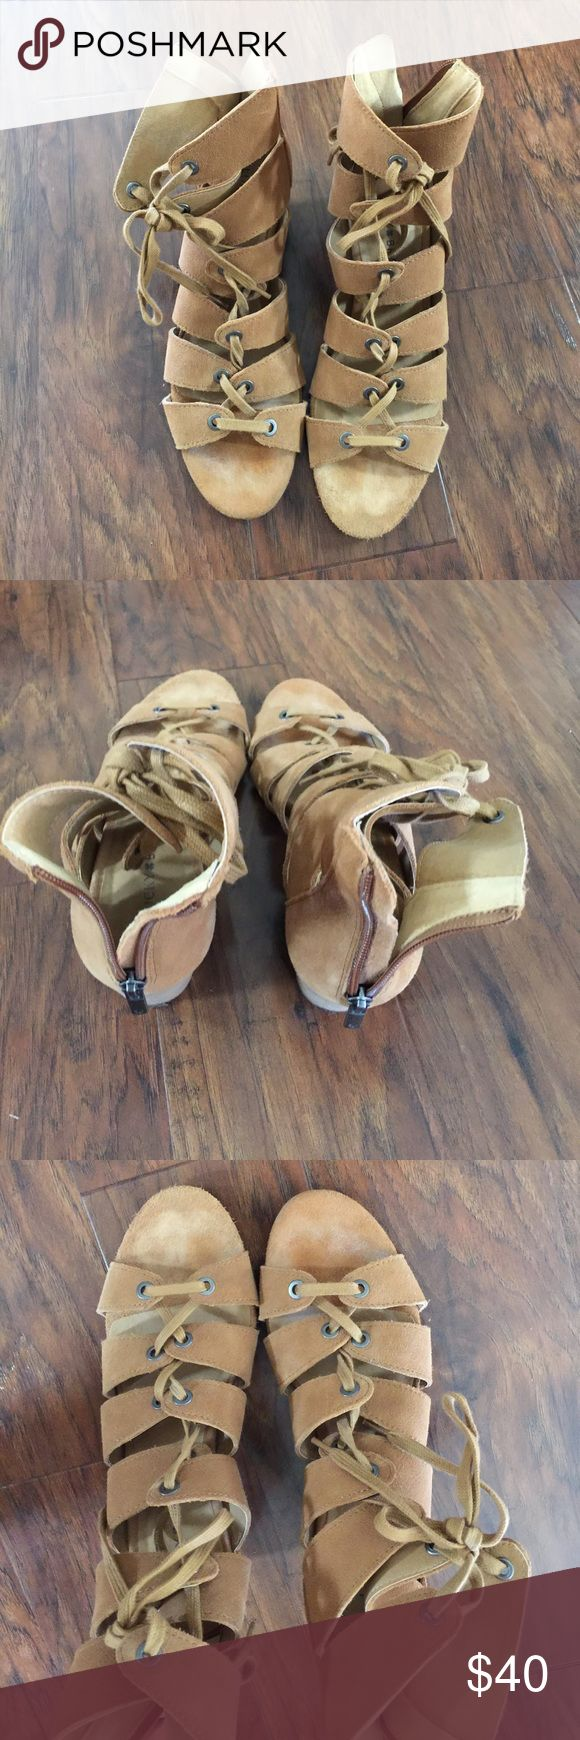 Lucky Brand gladiator sandals with heel Worn about 3 times. Comfortable Lucky Brand Shoes Lace Up Boots